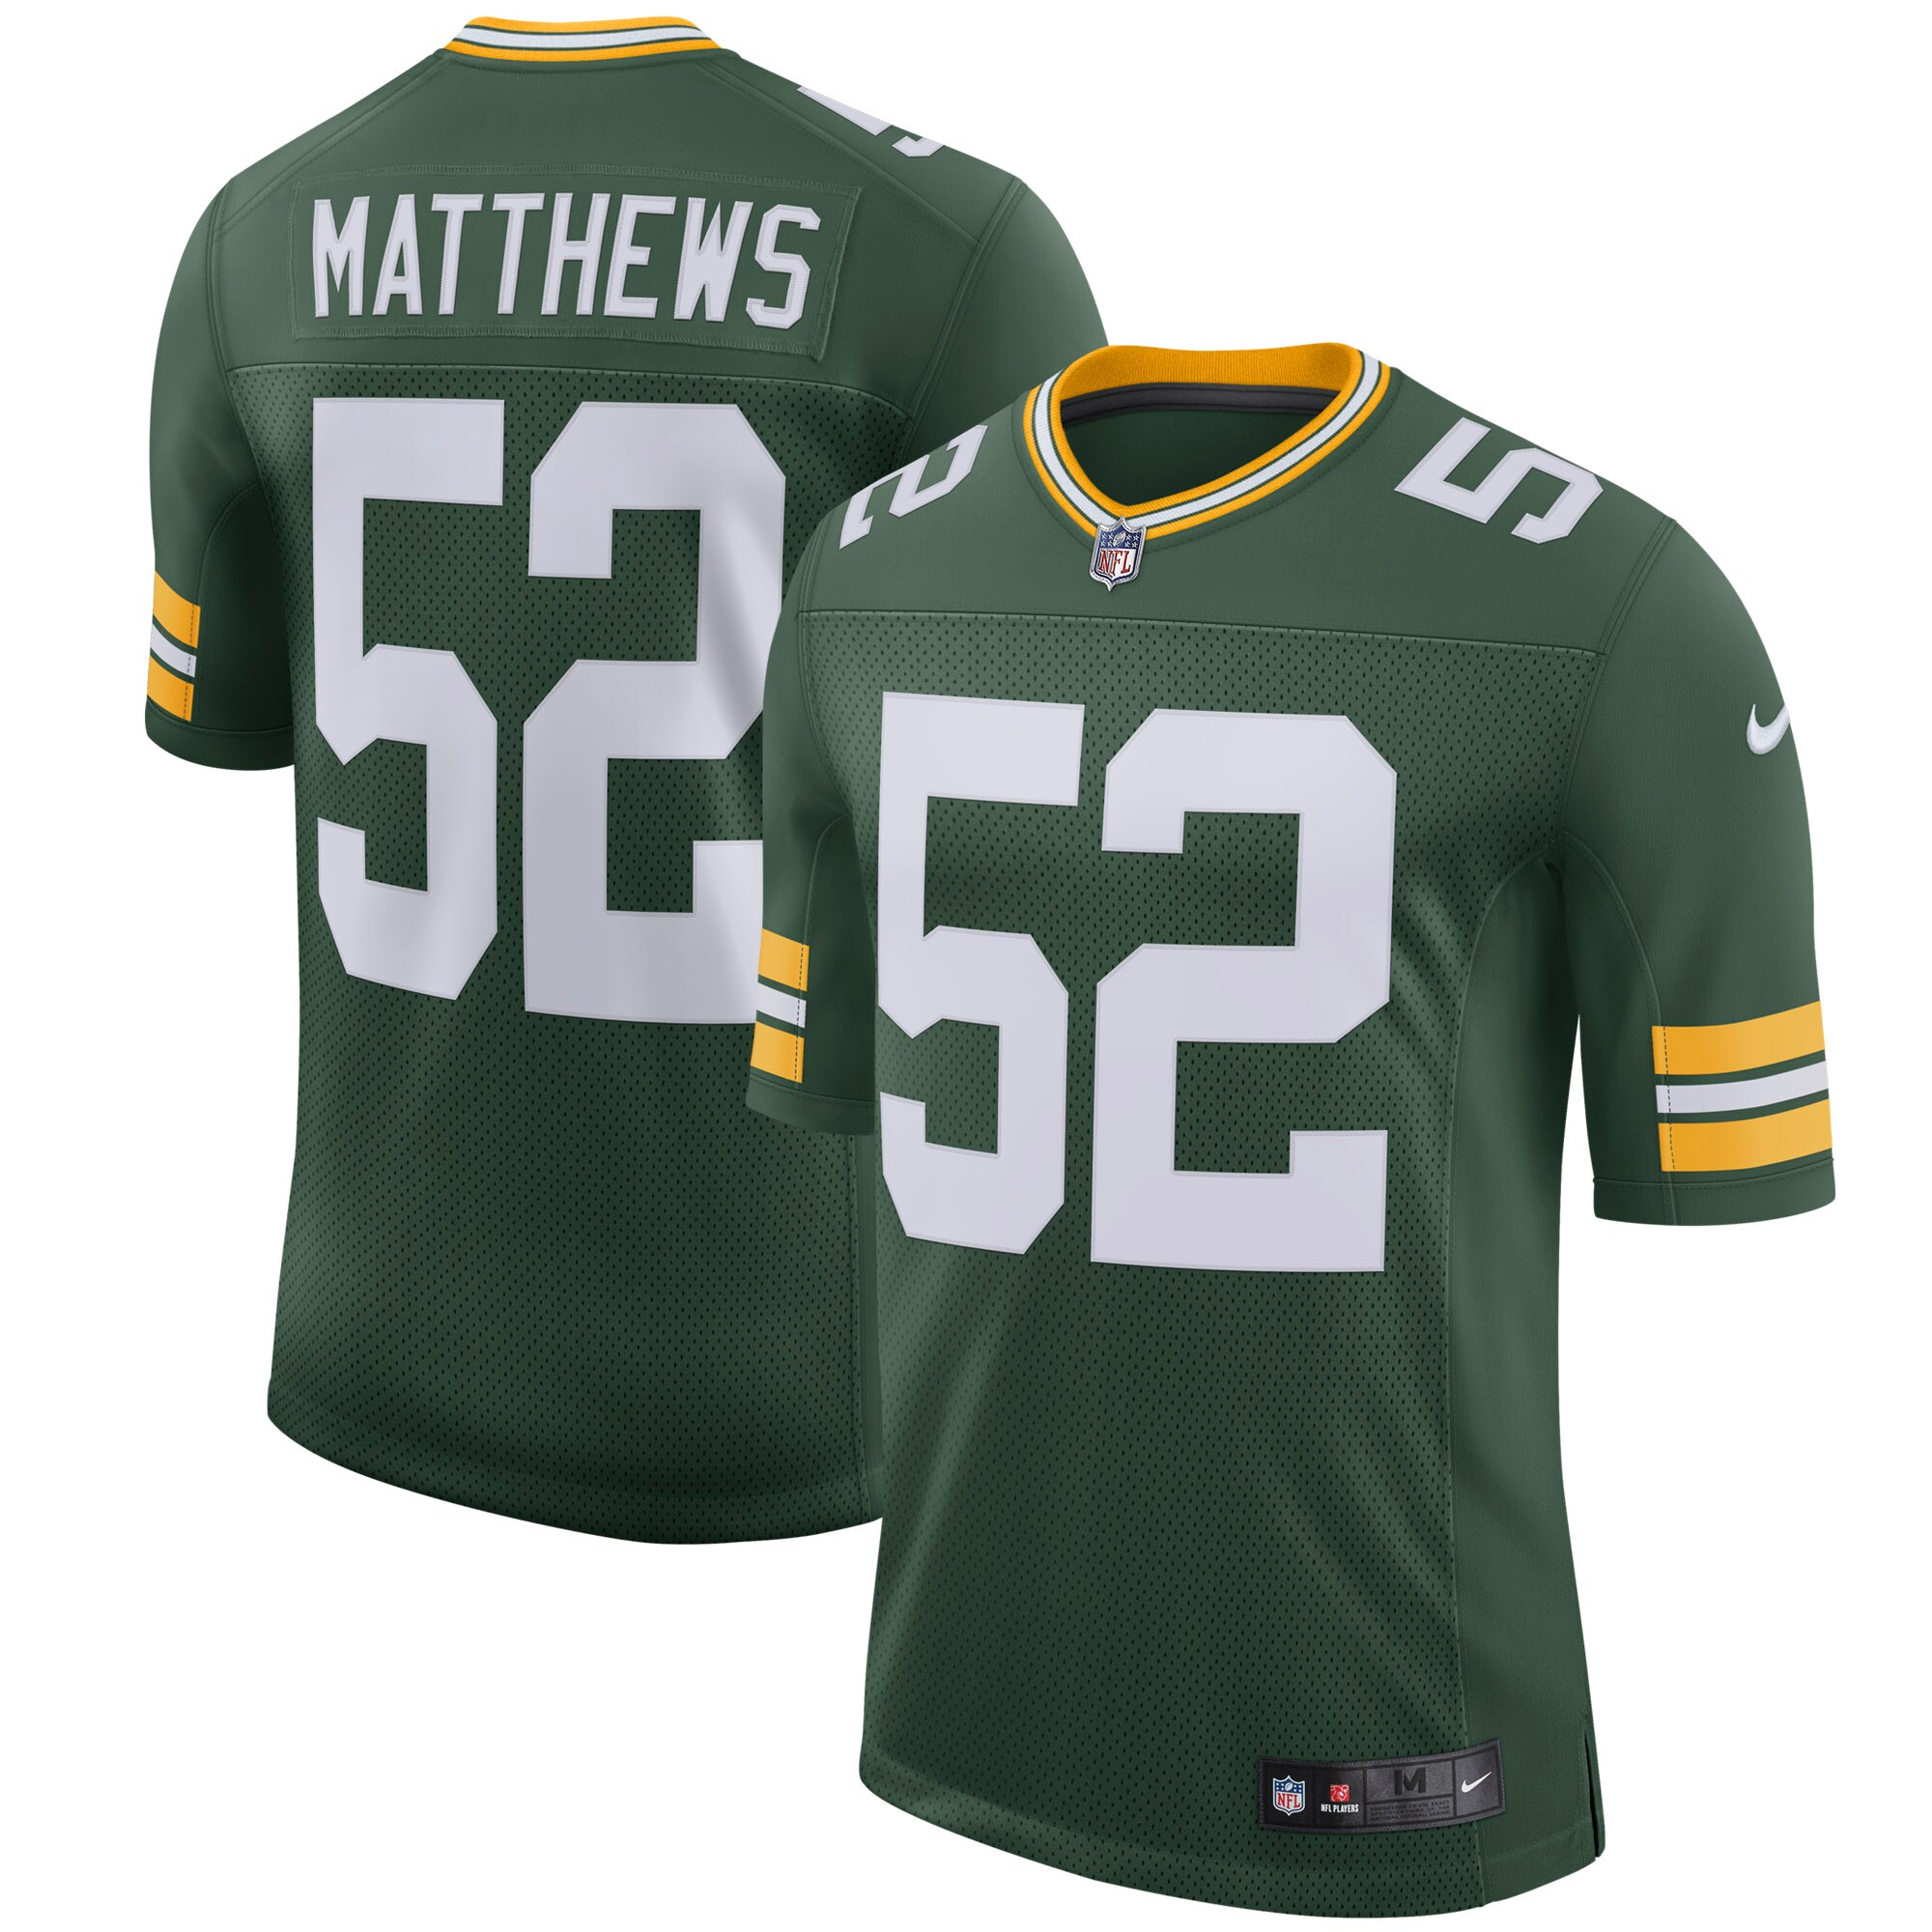 Clay Matthews Green Bay Packers Nike Youth Classic Limited Player Jersey - Green